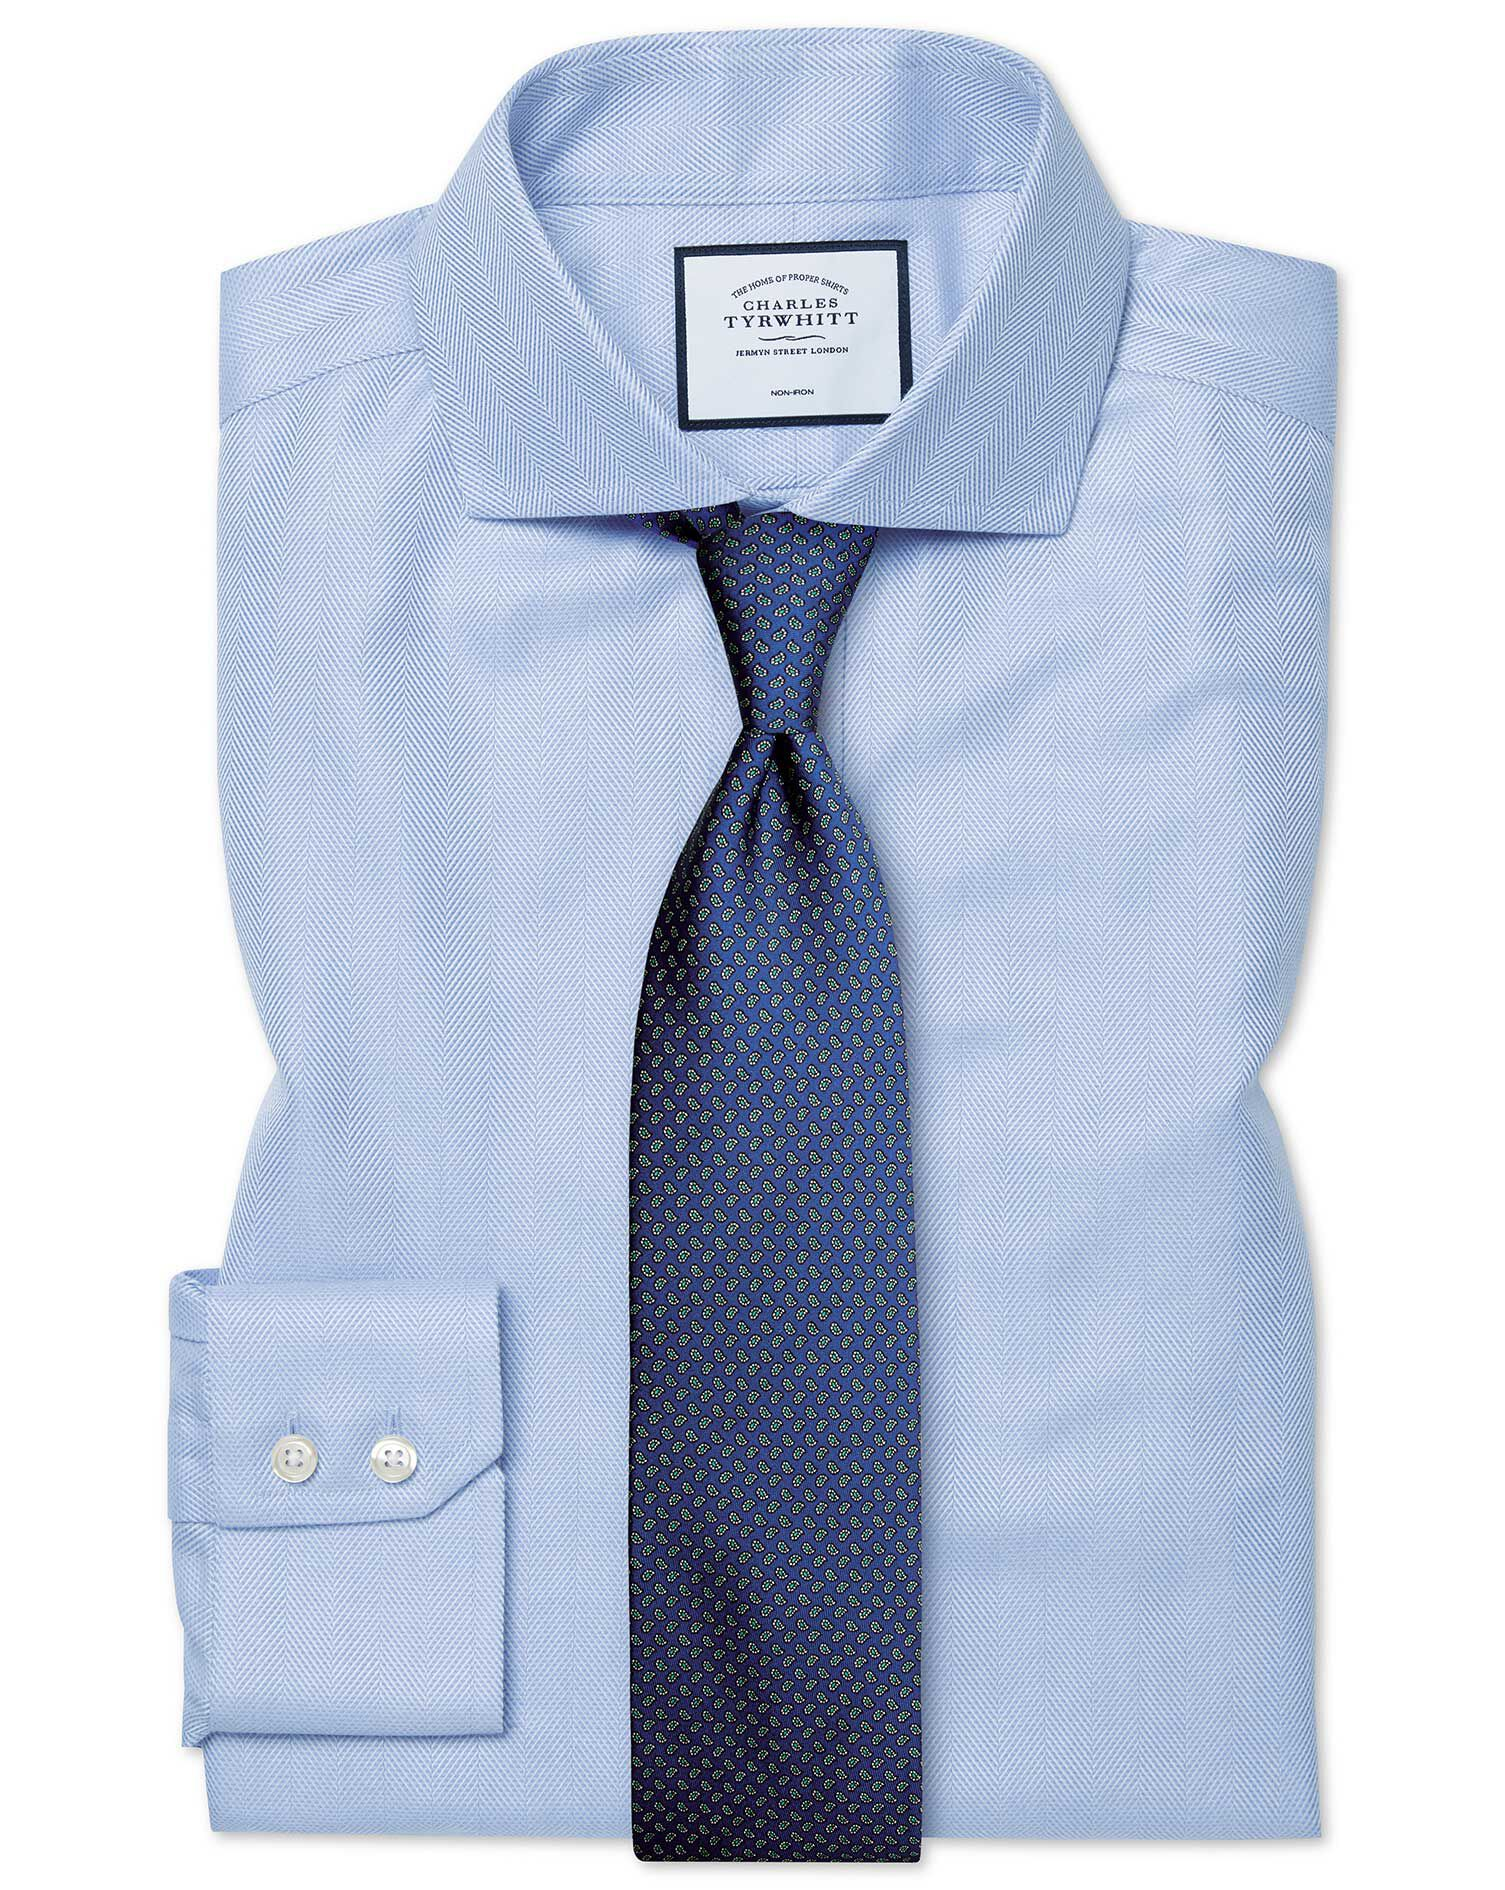 Dress Shirts Impartial Classic Fit Blue Herringbone Plaid French Cuff Cotton Dress Shirt